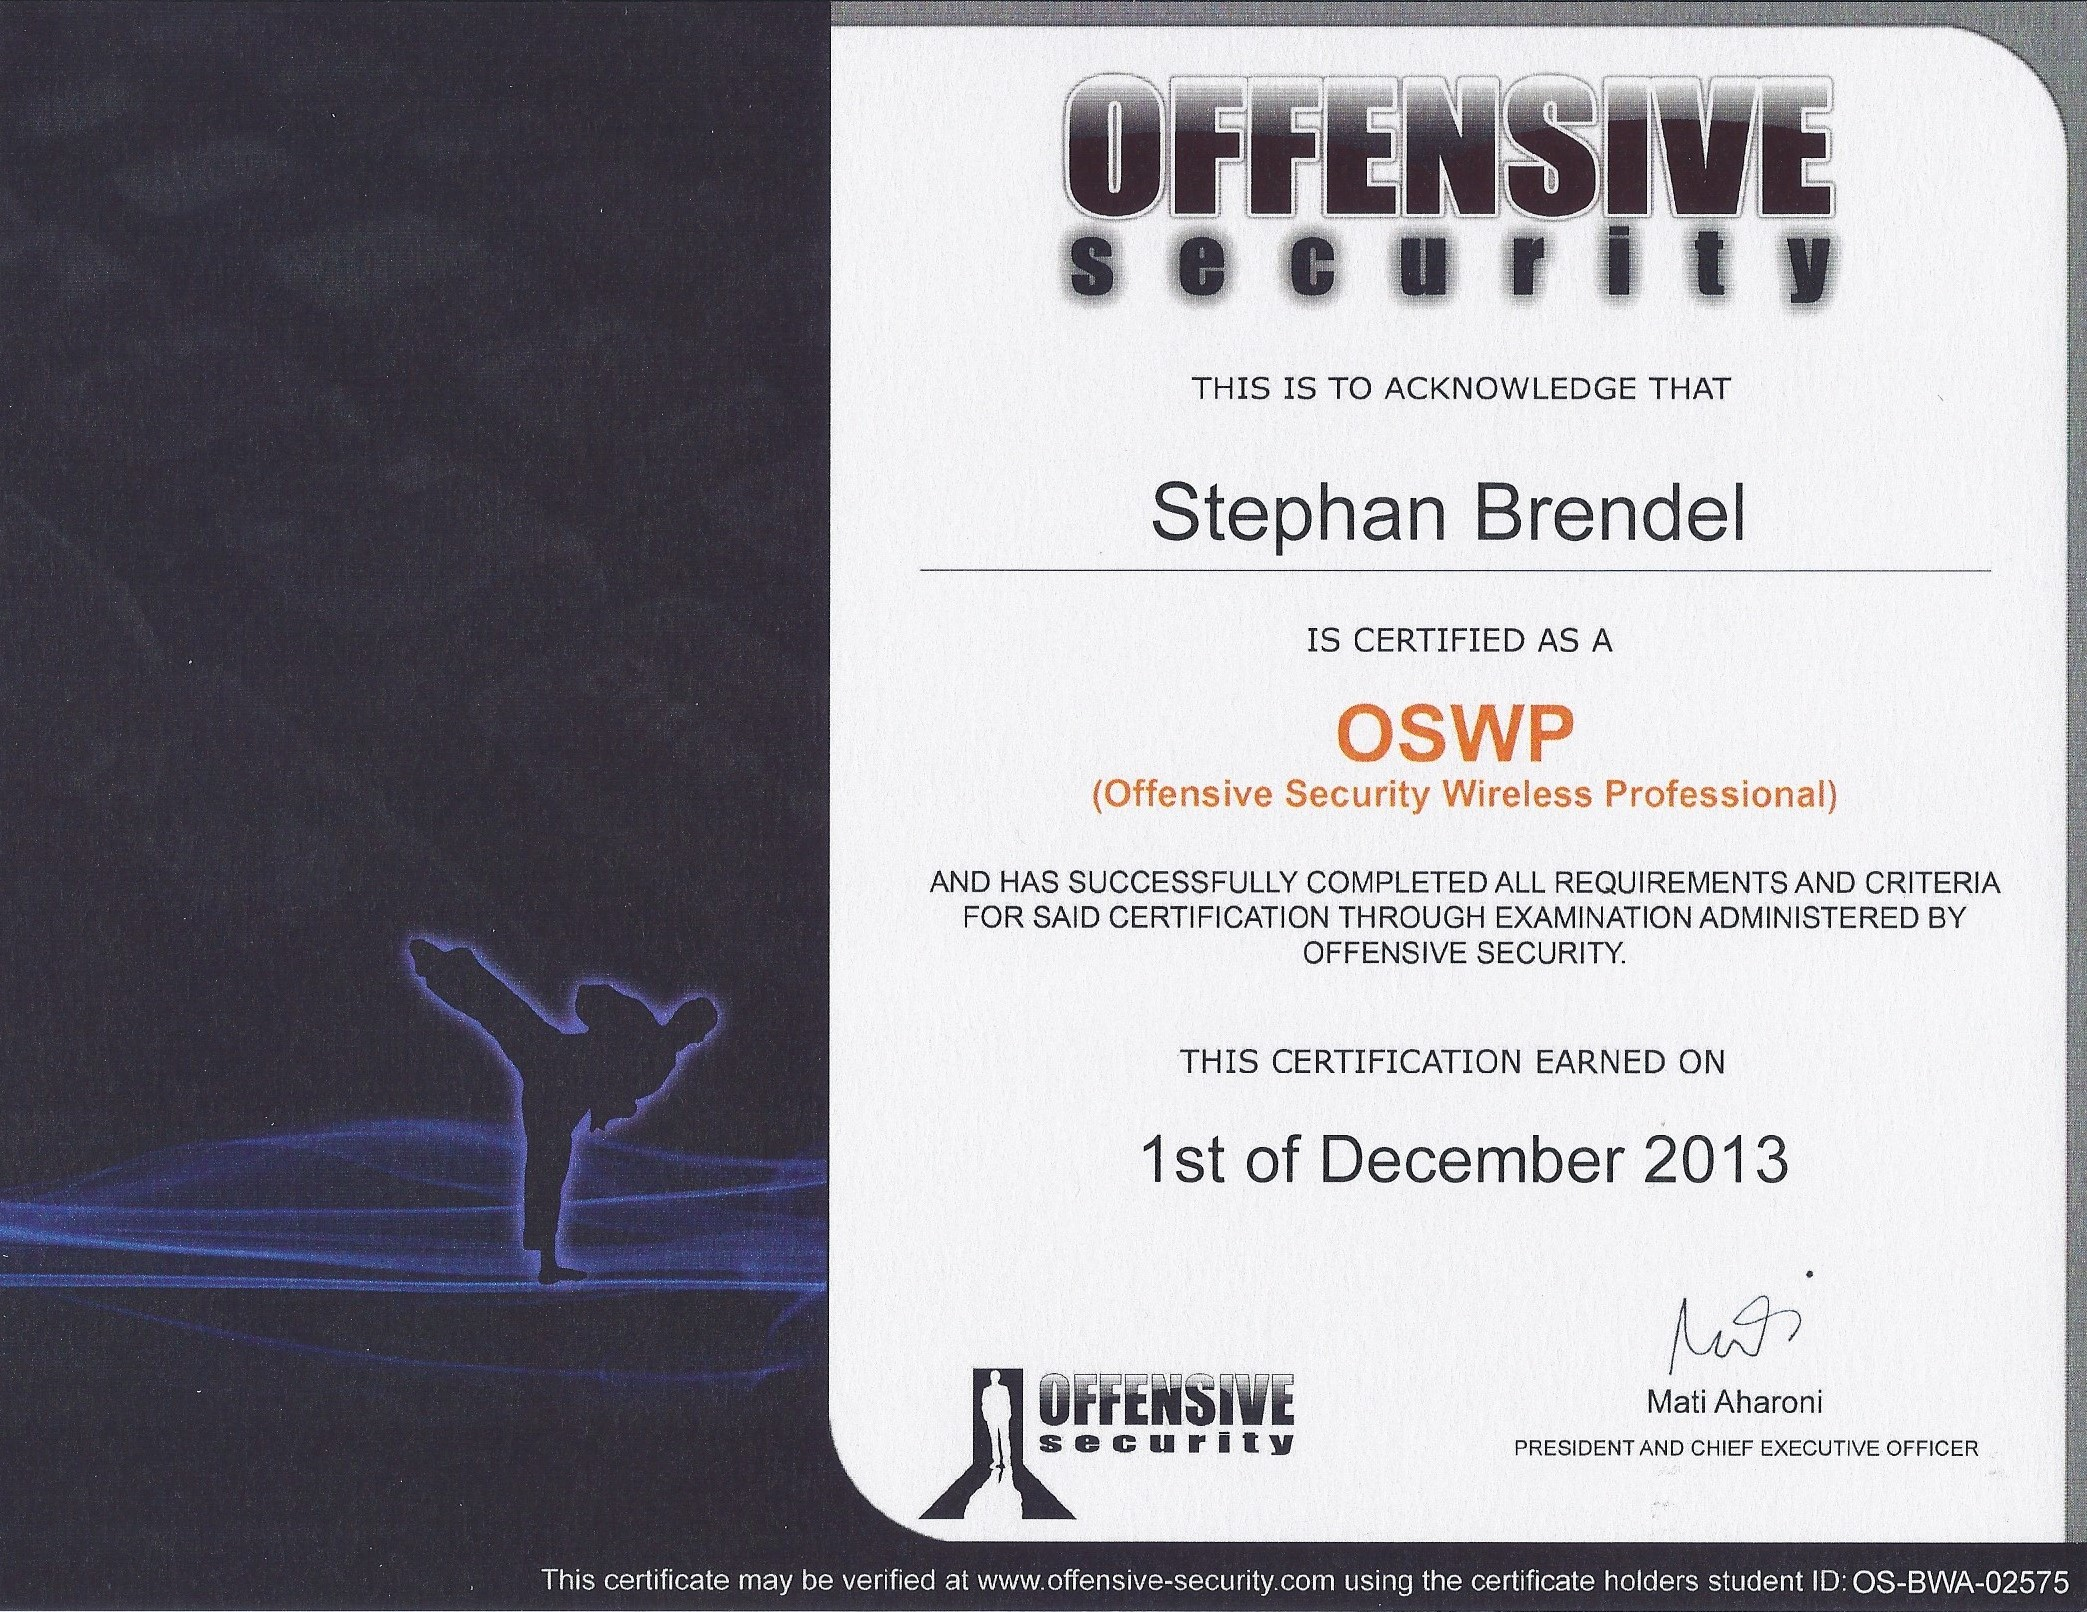 Offensive Security Wireless Professional (OSWP)